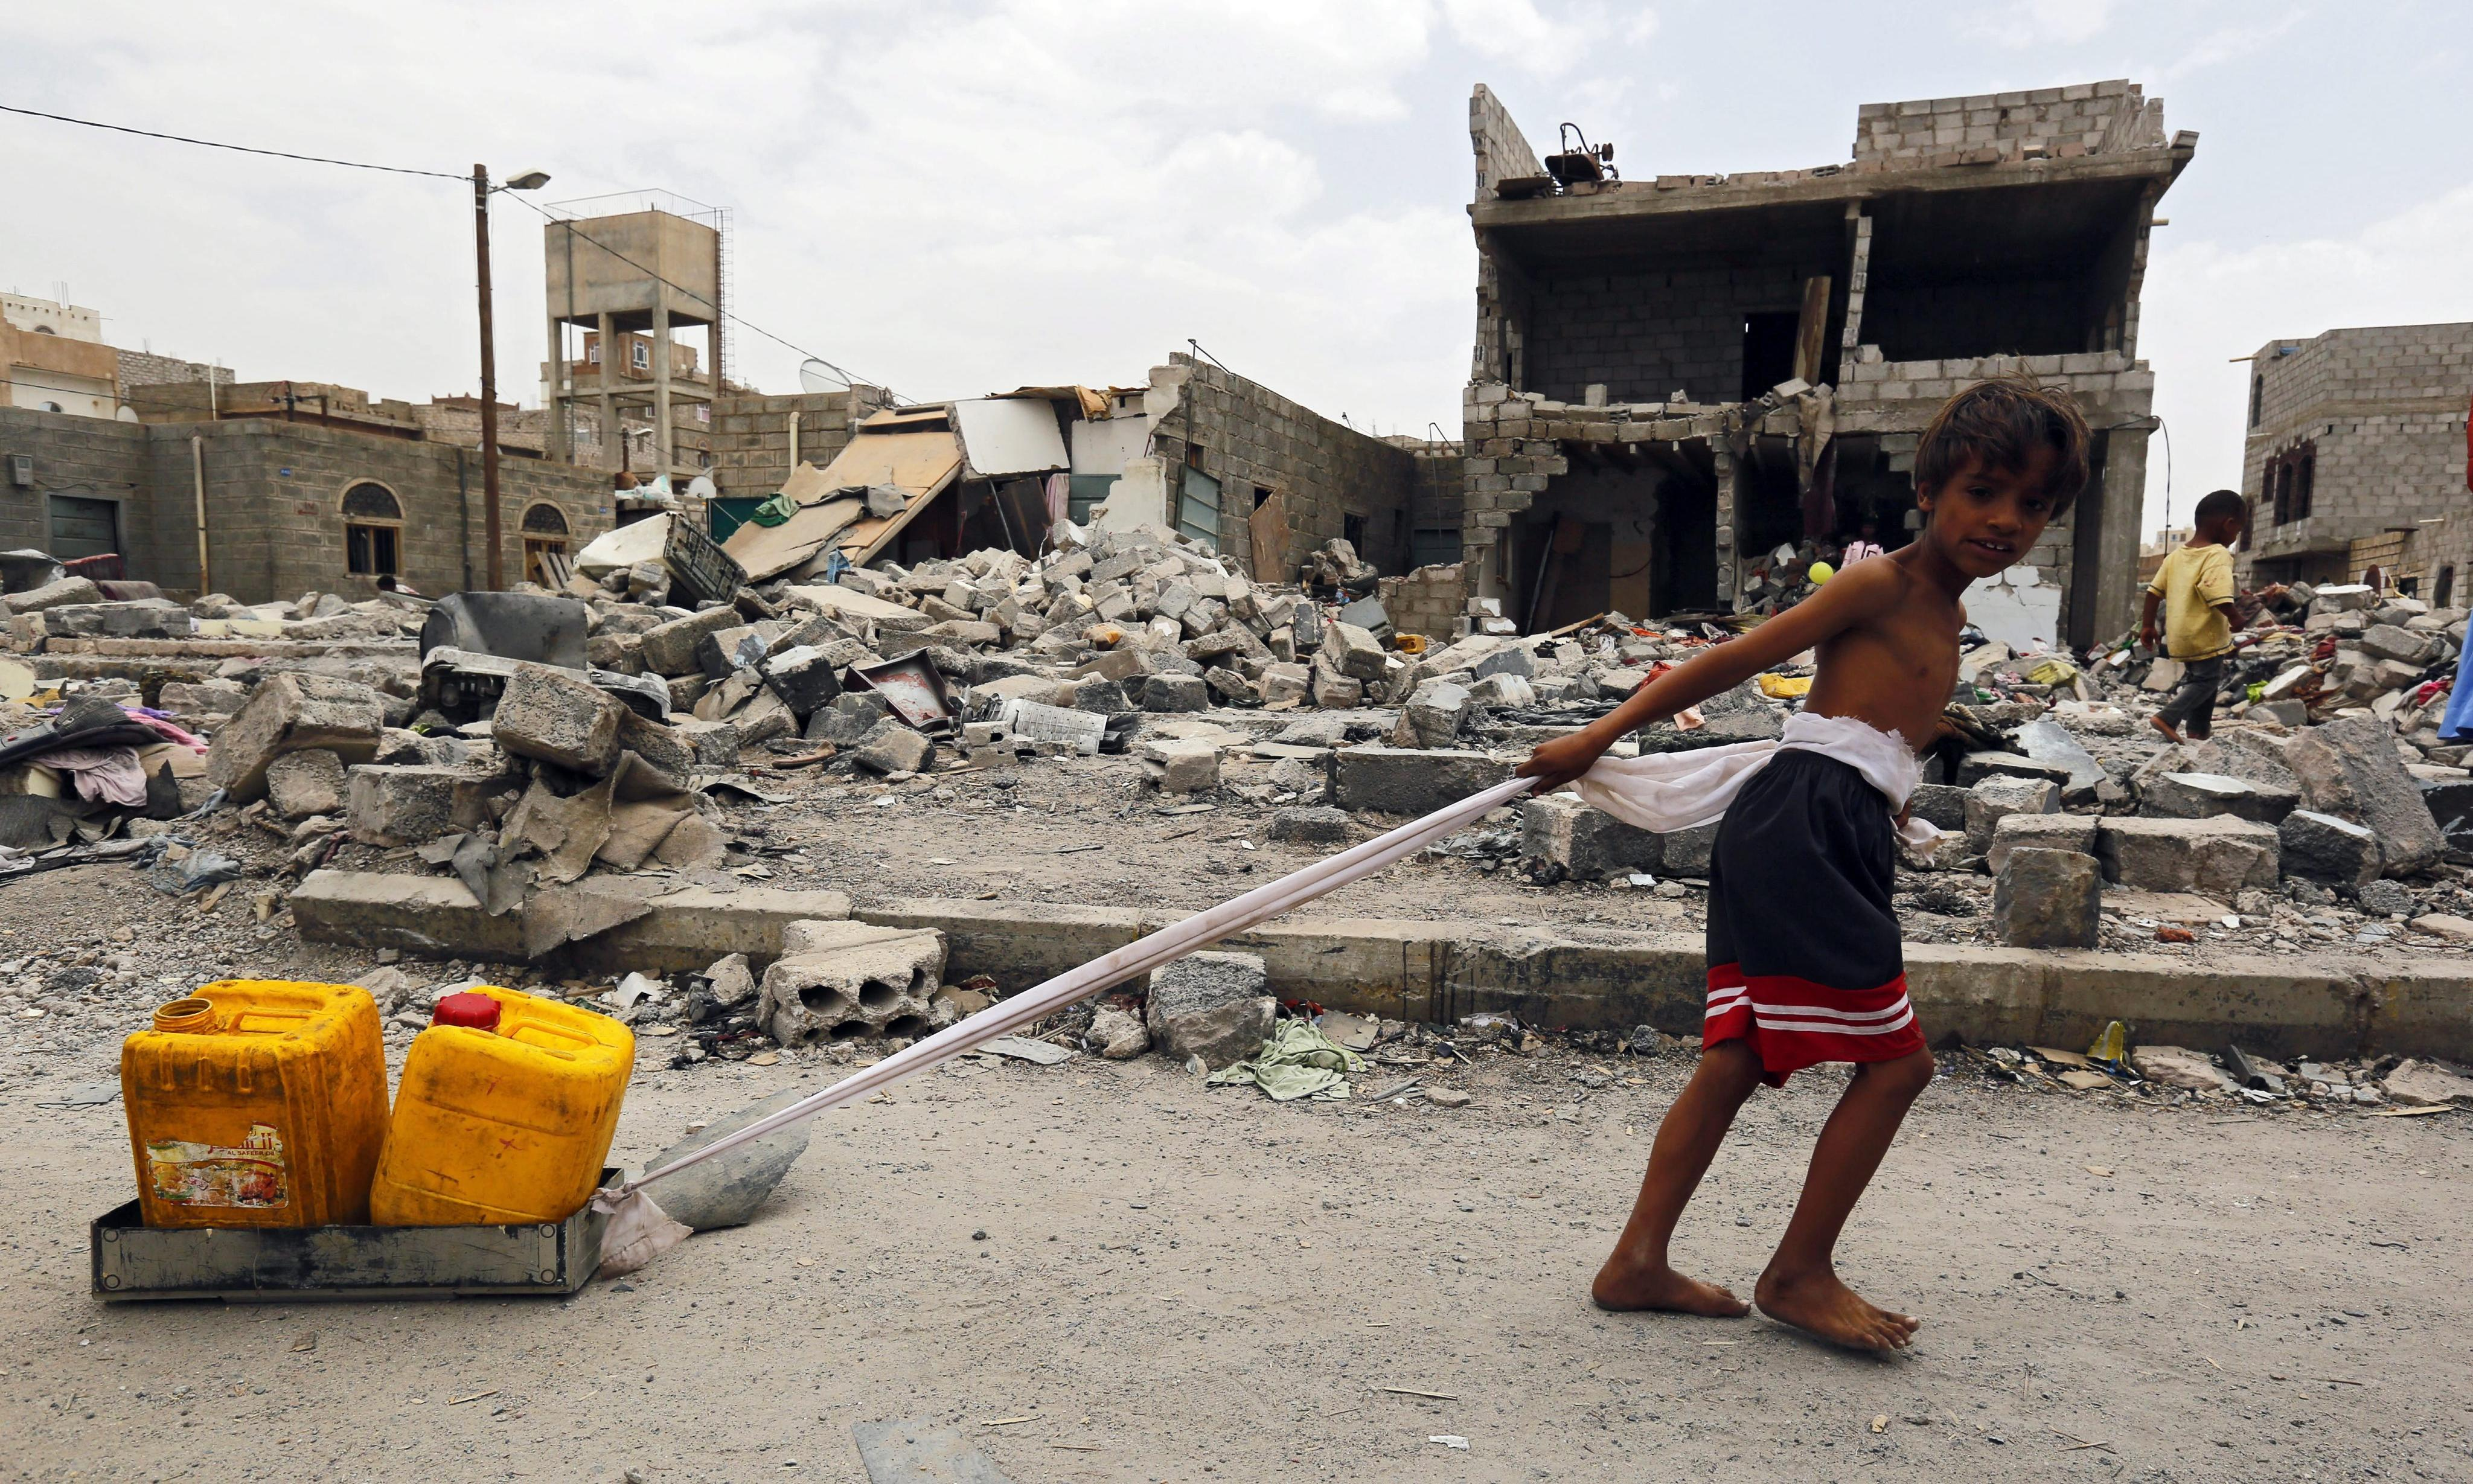 13 million people in Yemen are struggling to find enough to eat, Oxfam says